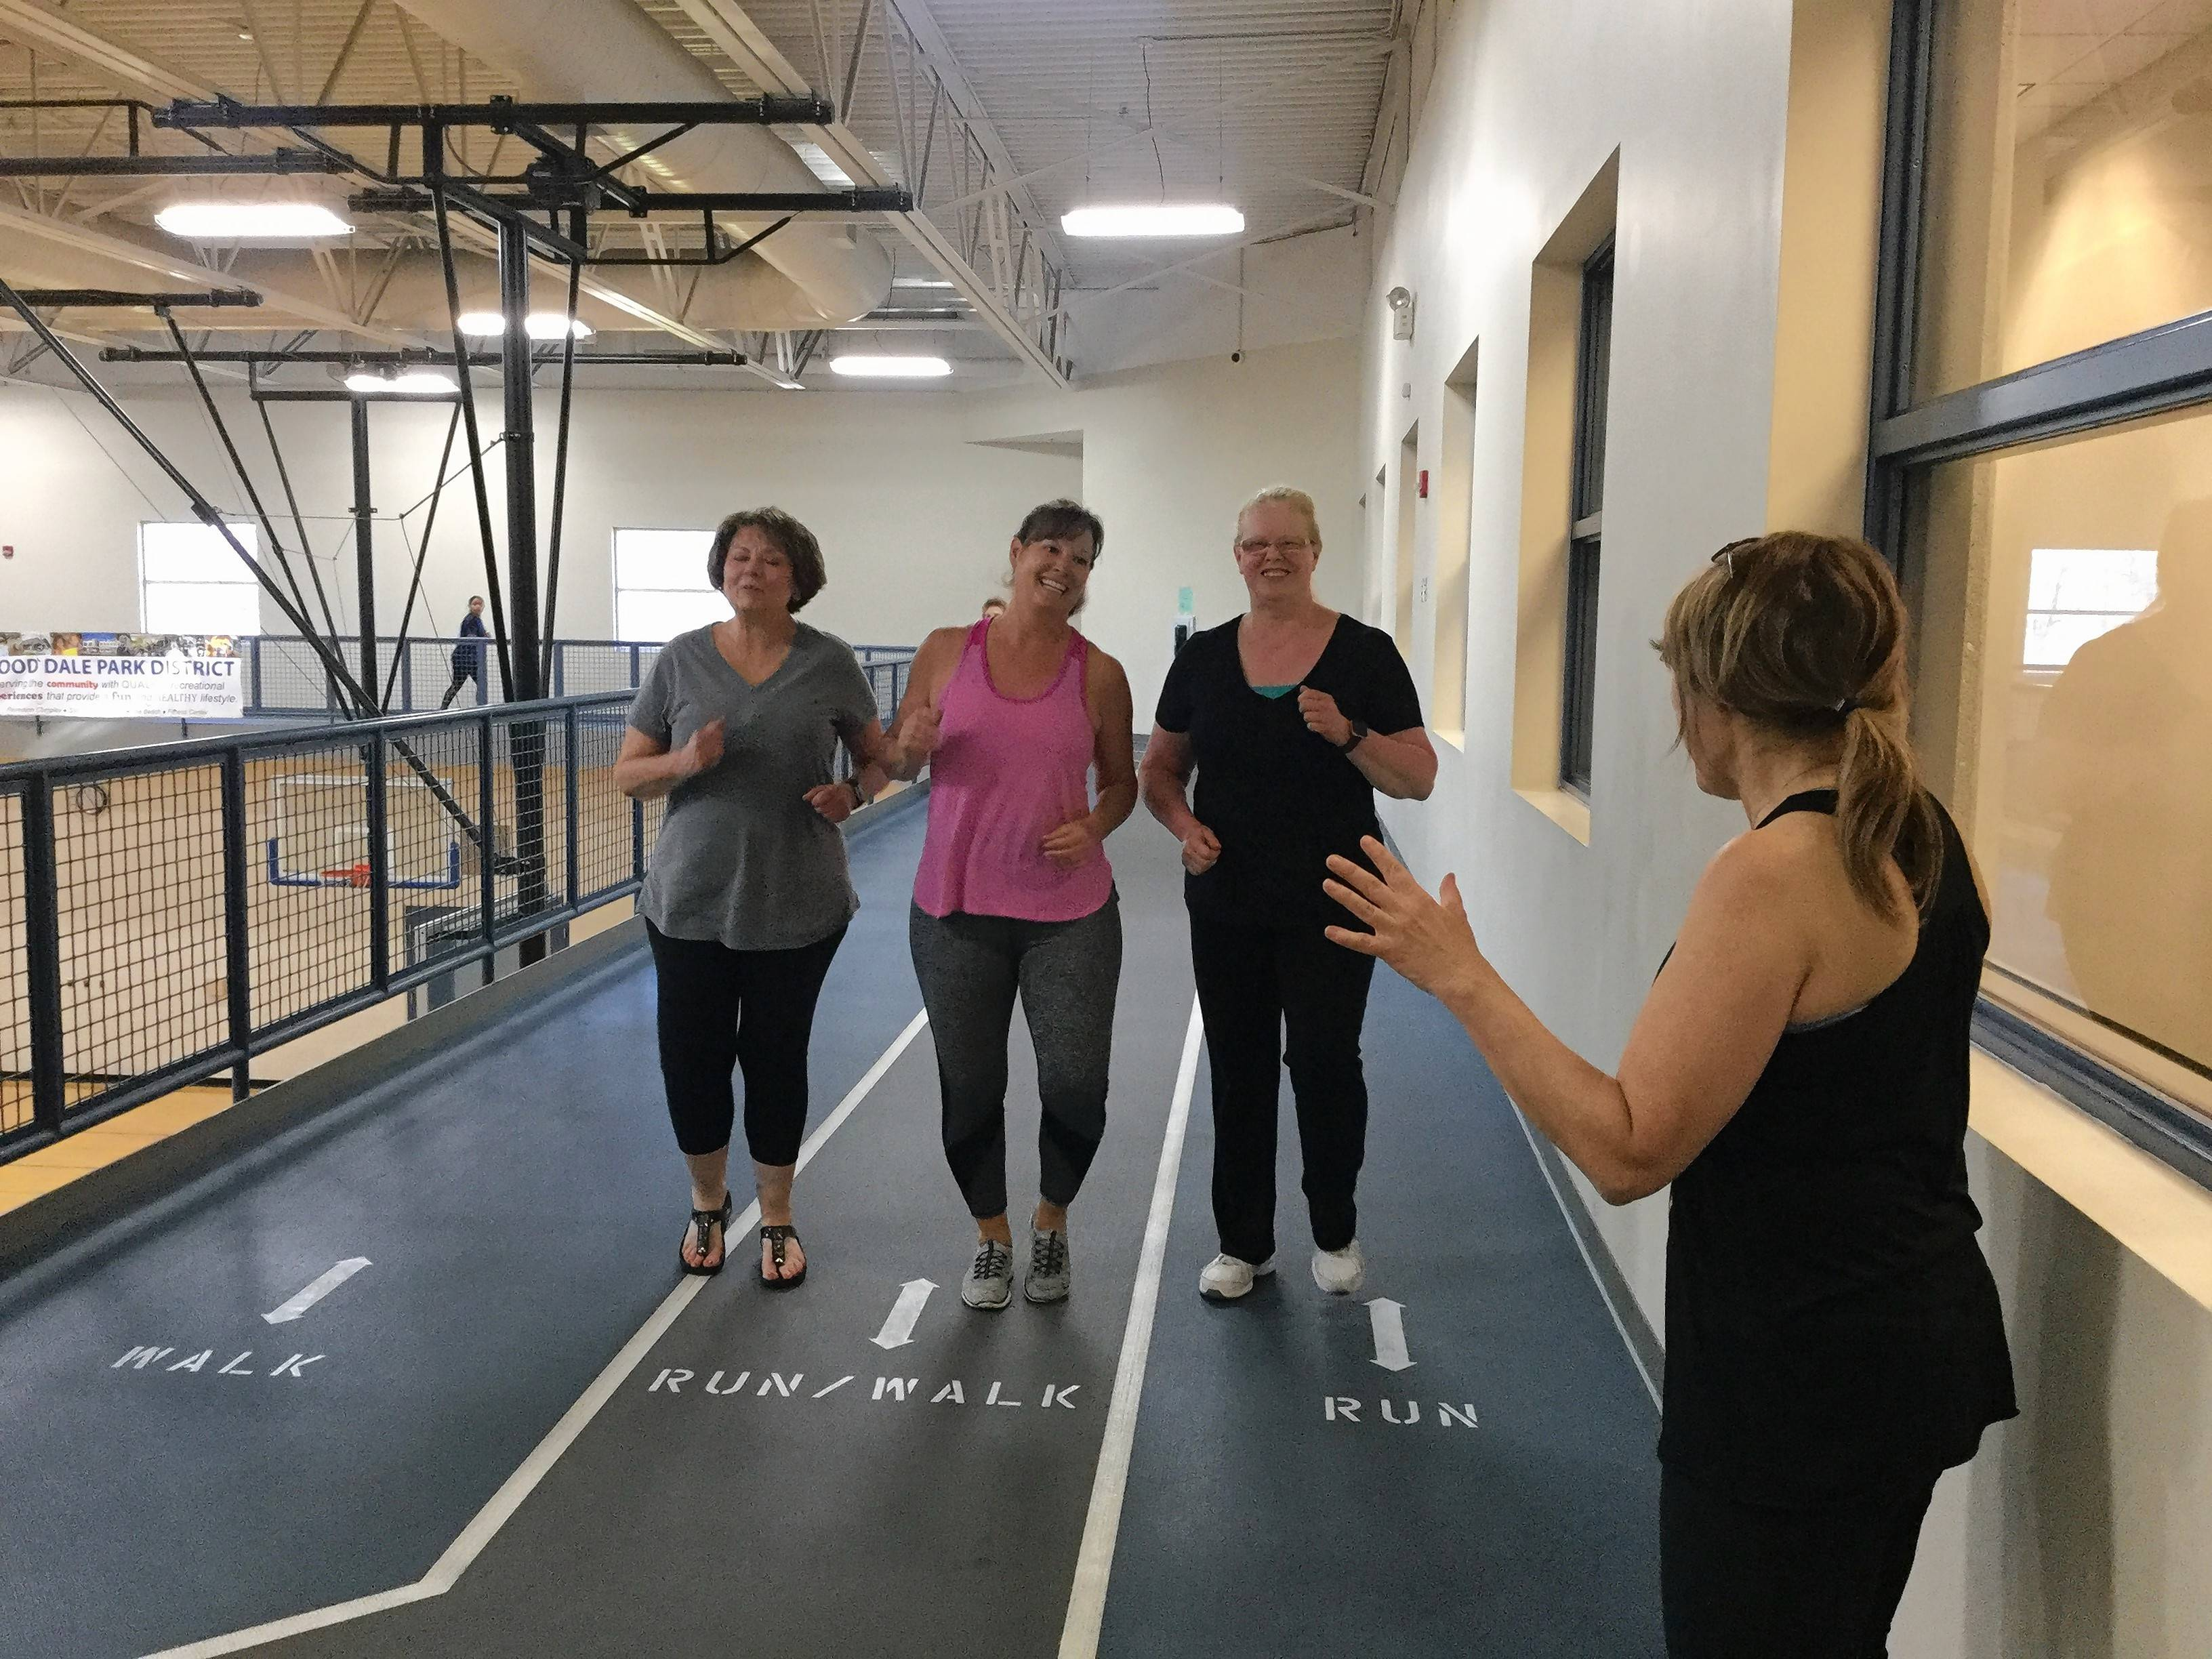 Sue Turco supports her team with words of encouragement as they walk the track at Wood Dale Park District. From left are Sue Turco, Celeste Guadagno, Kathleen Guadagno, and Karen Christopoulos.